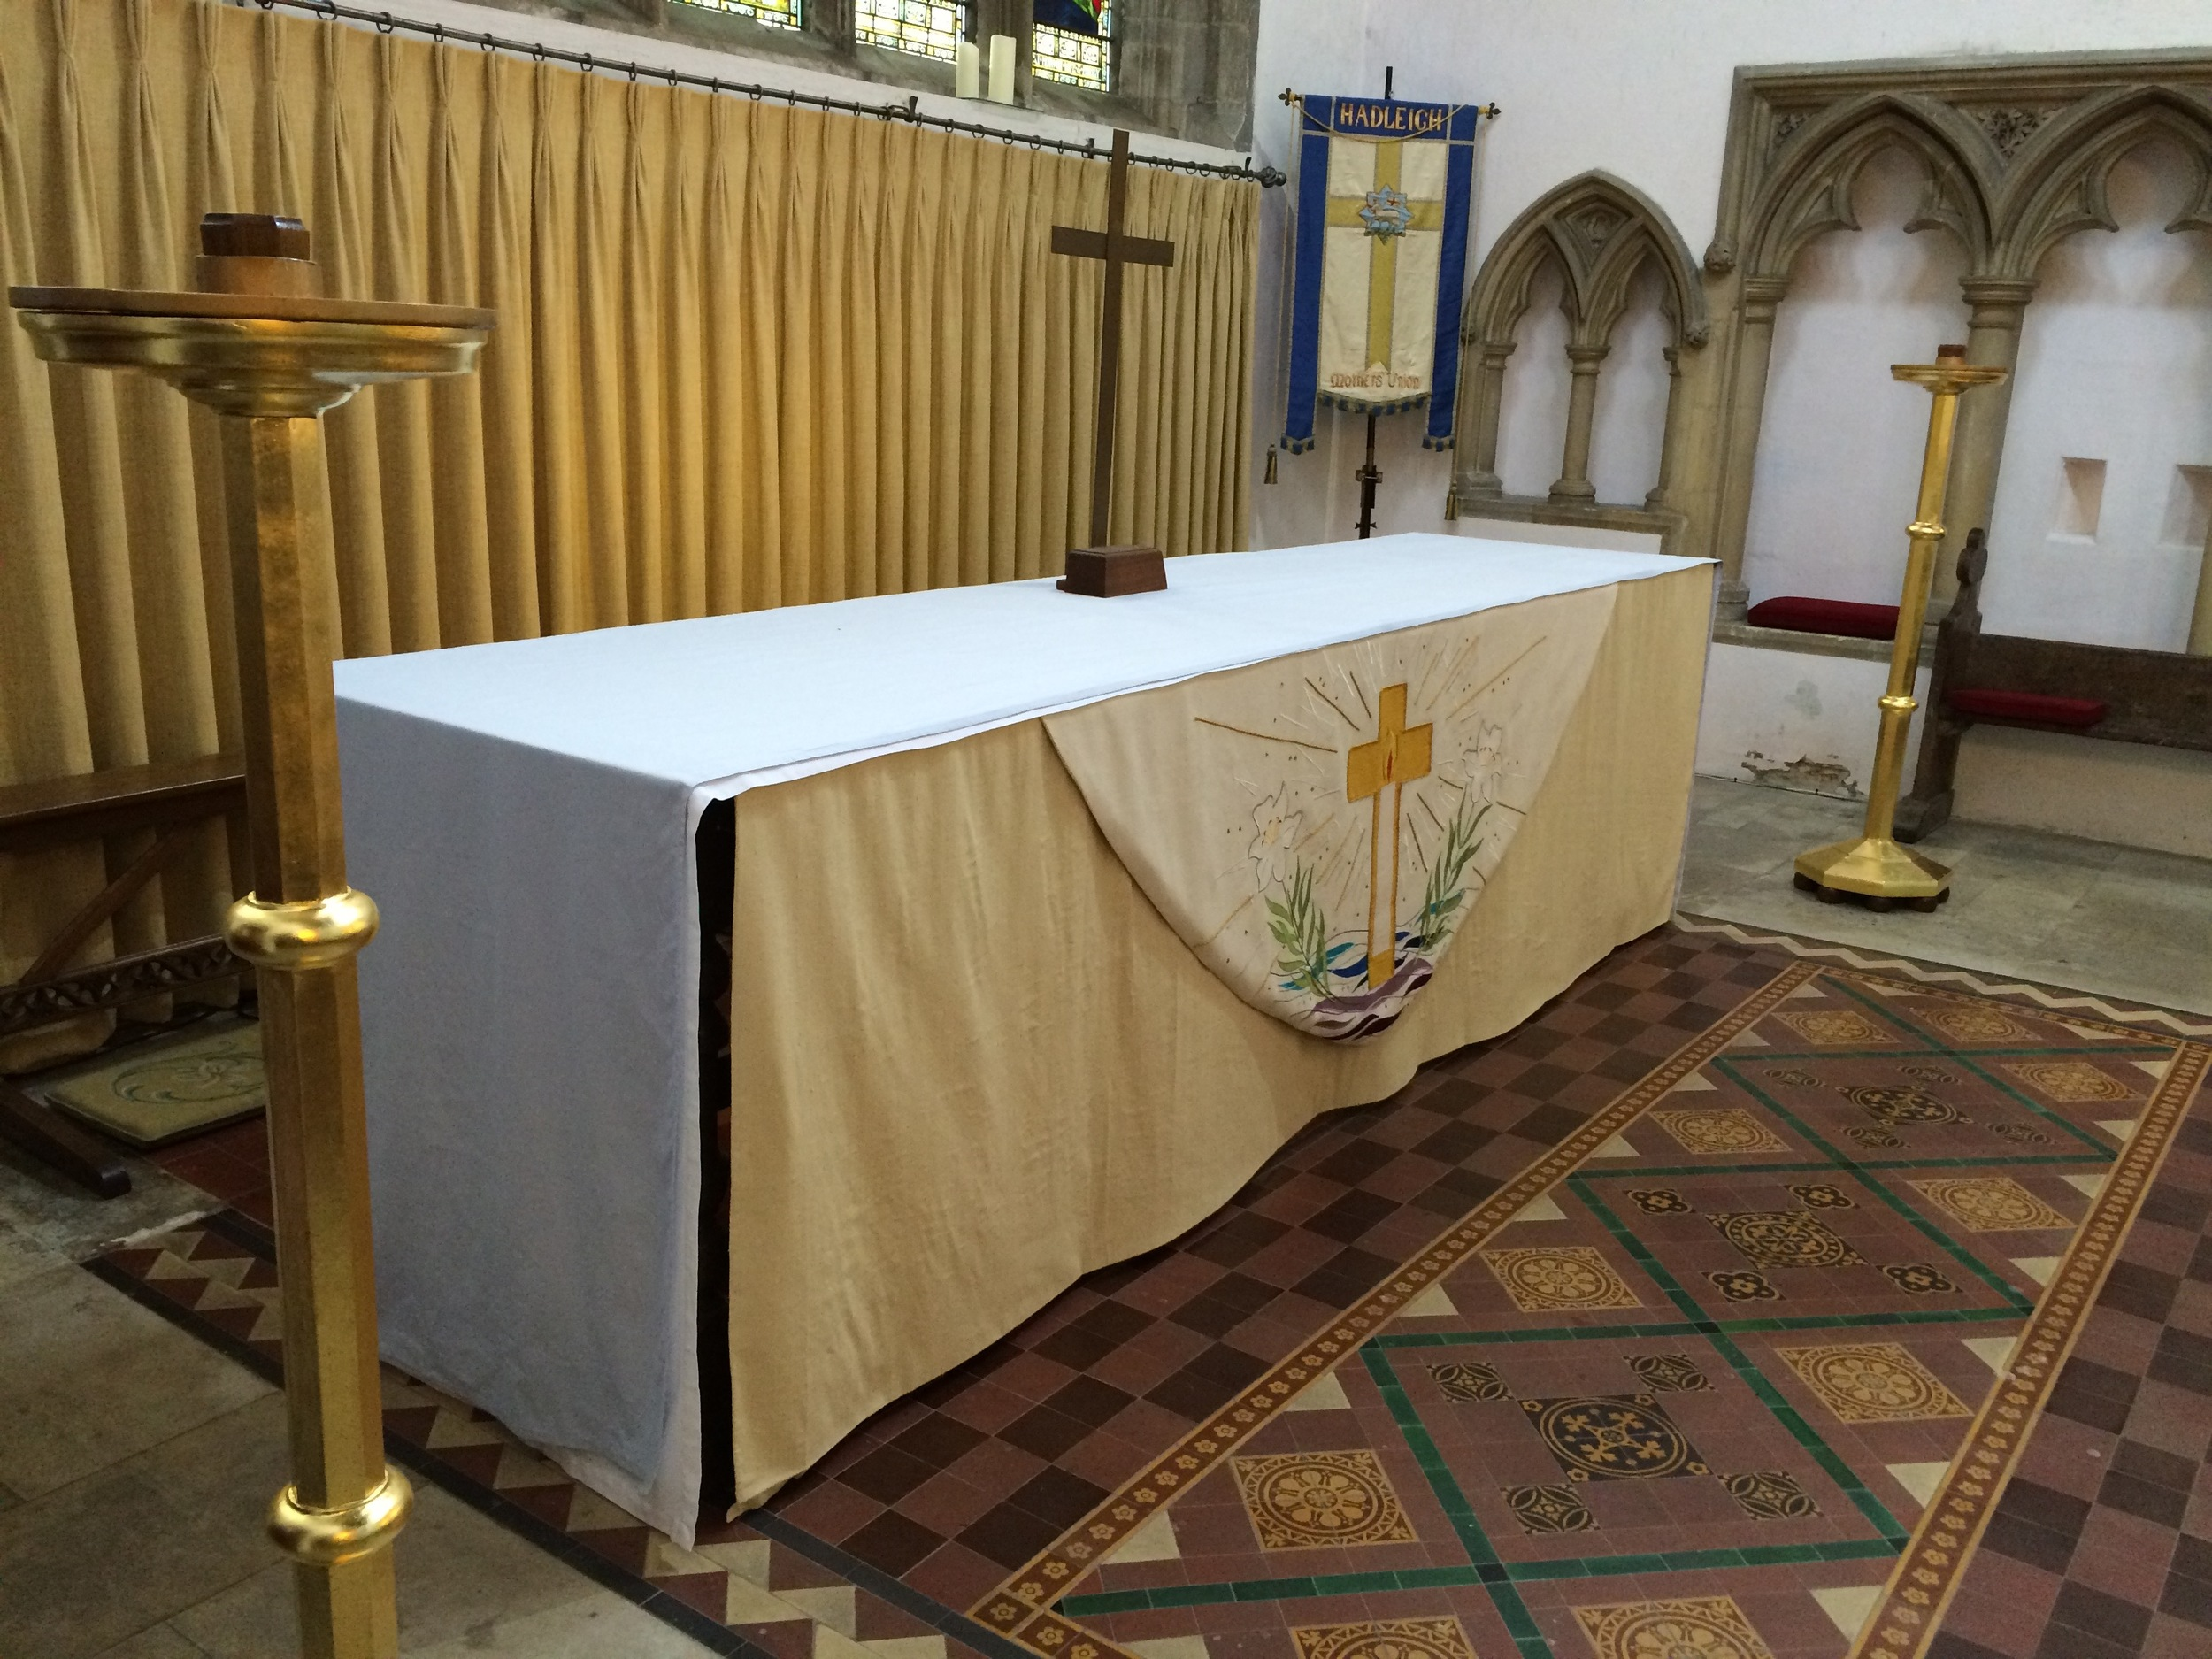 The recently refurbished candle sticks by the `high altar at St Mary's, Hadleigh.